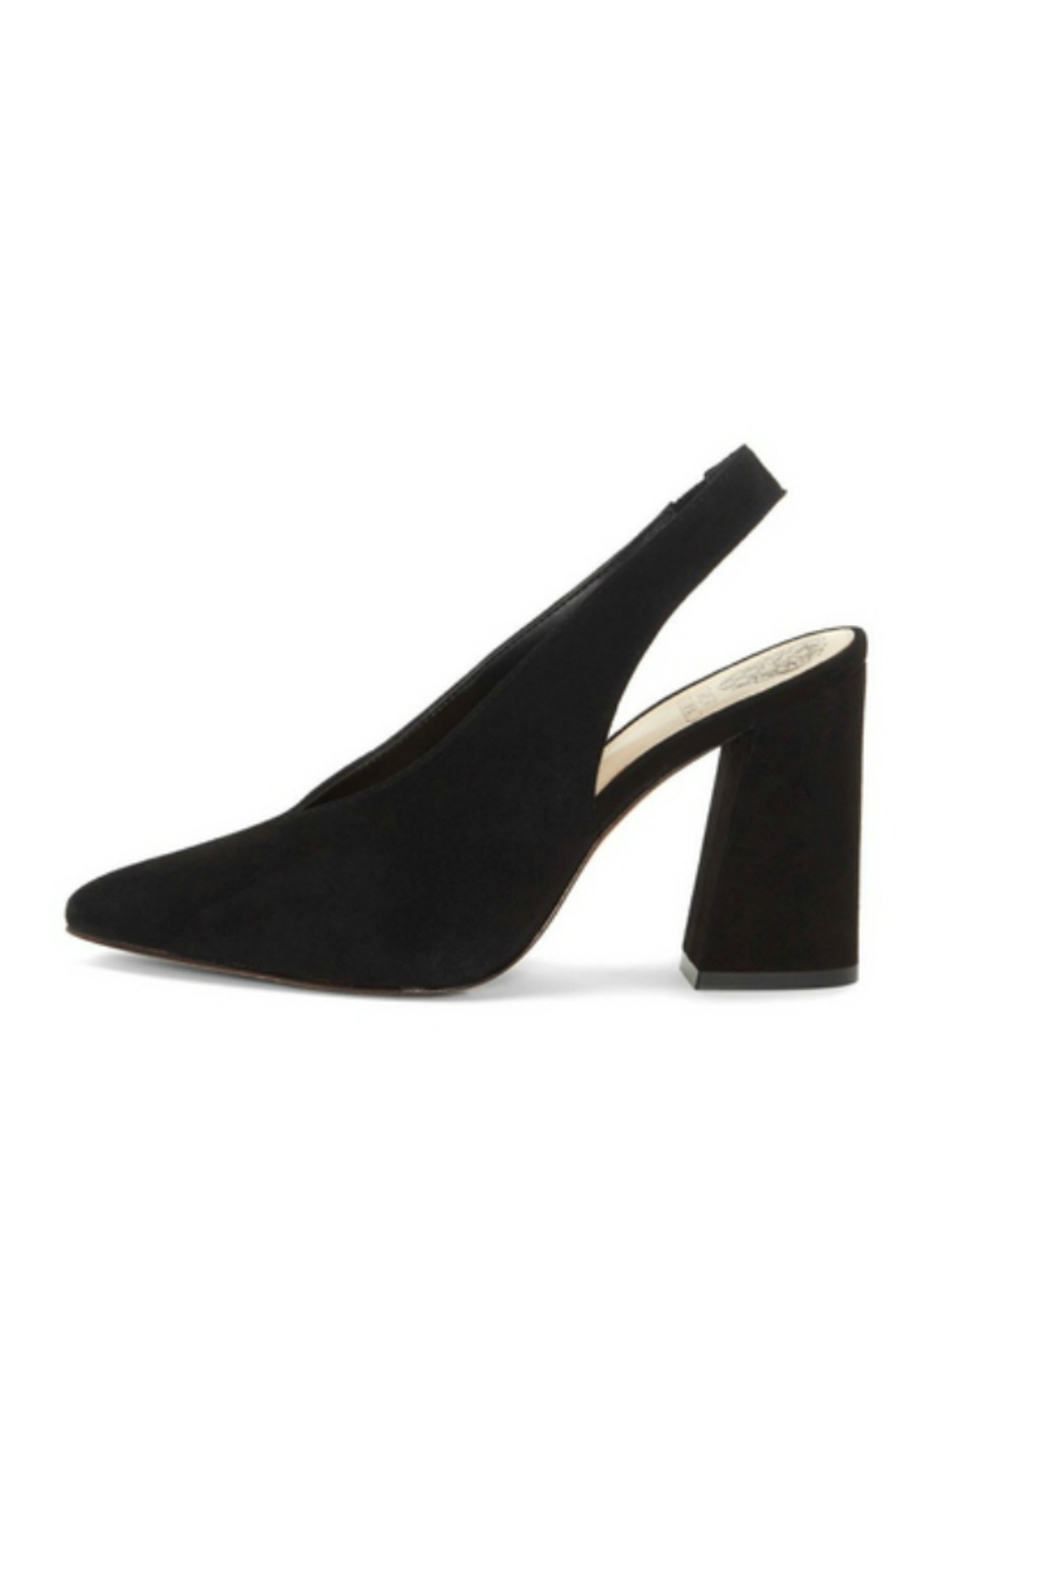 91acd8c2a42 Vince Camuto Tashinta Heel from New Jersey by Suburban Shoes ...